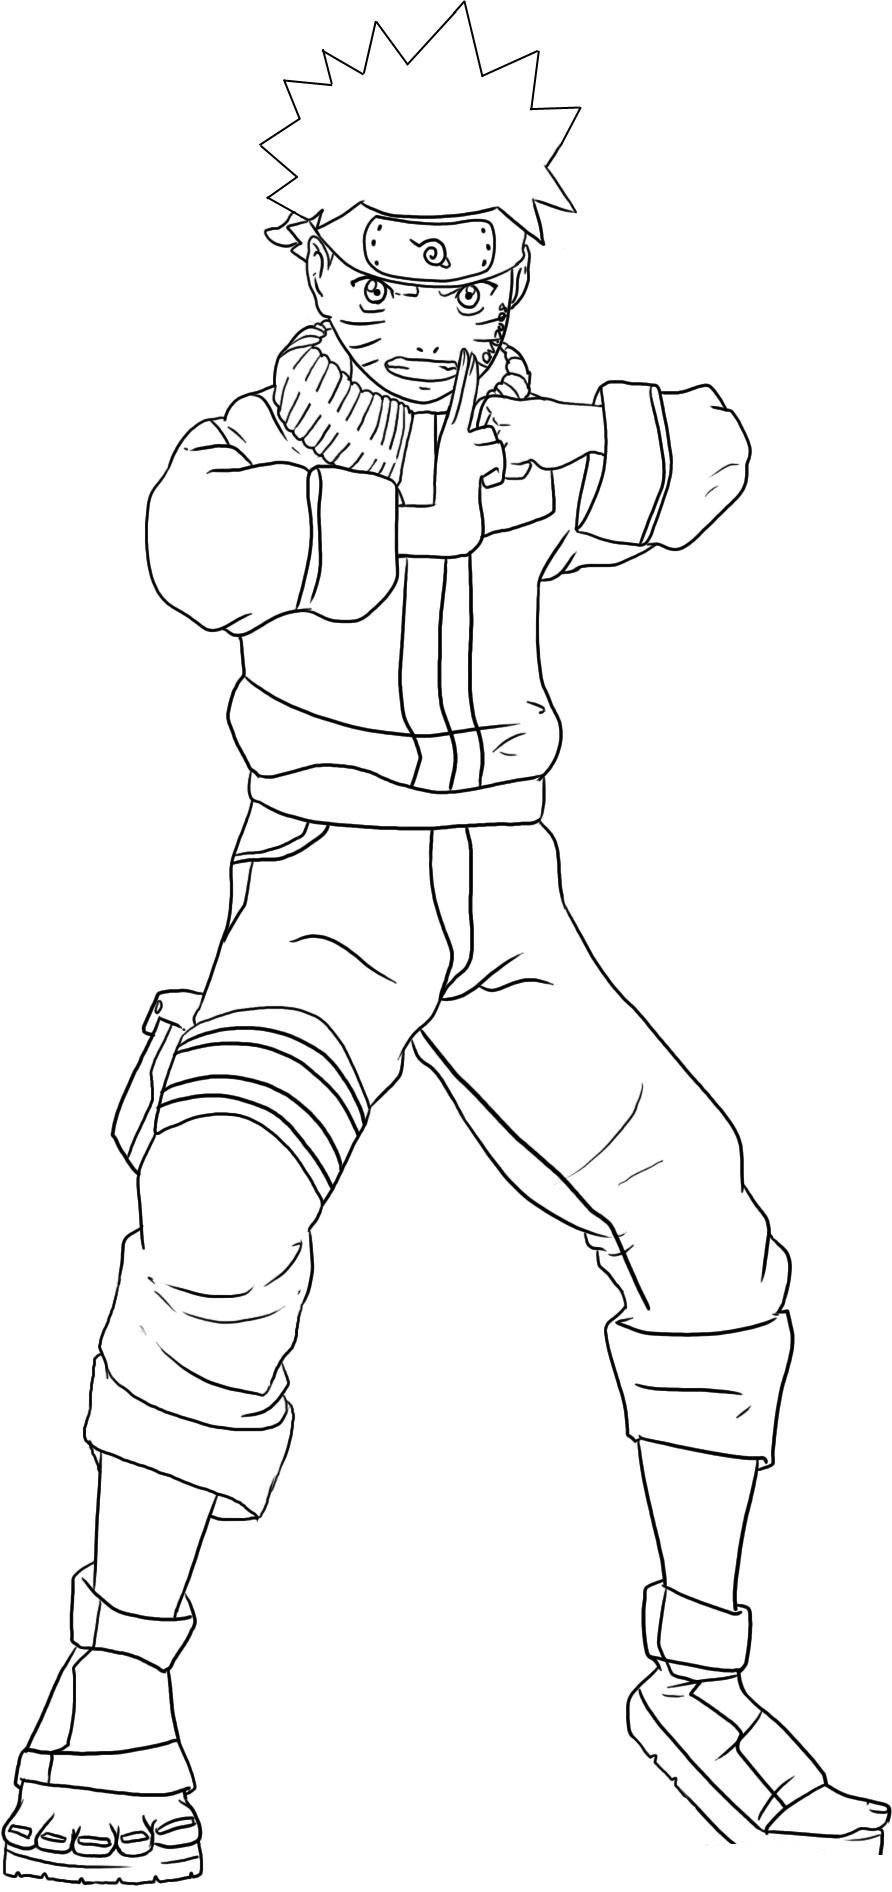 naruto coloring page naruto shippuden coloring pages to download and print for free coloring naruto page